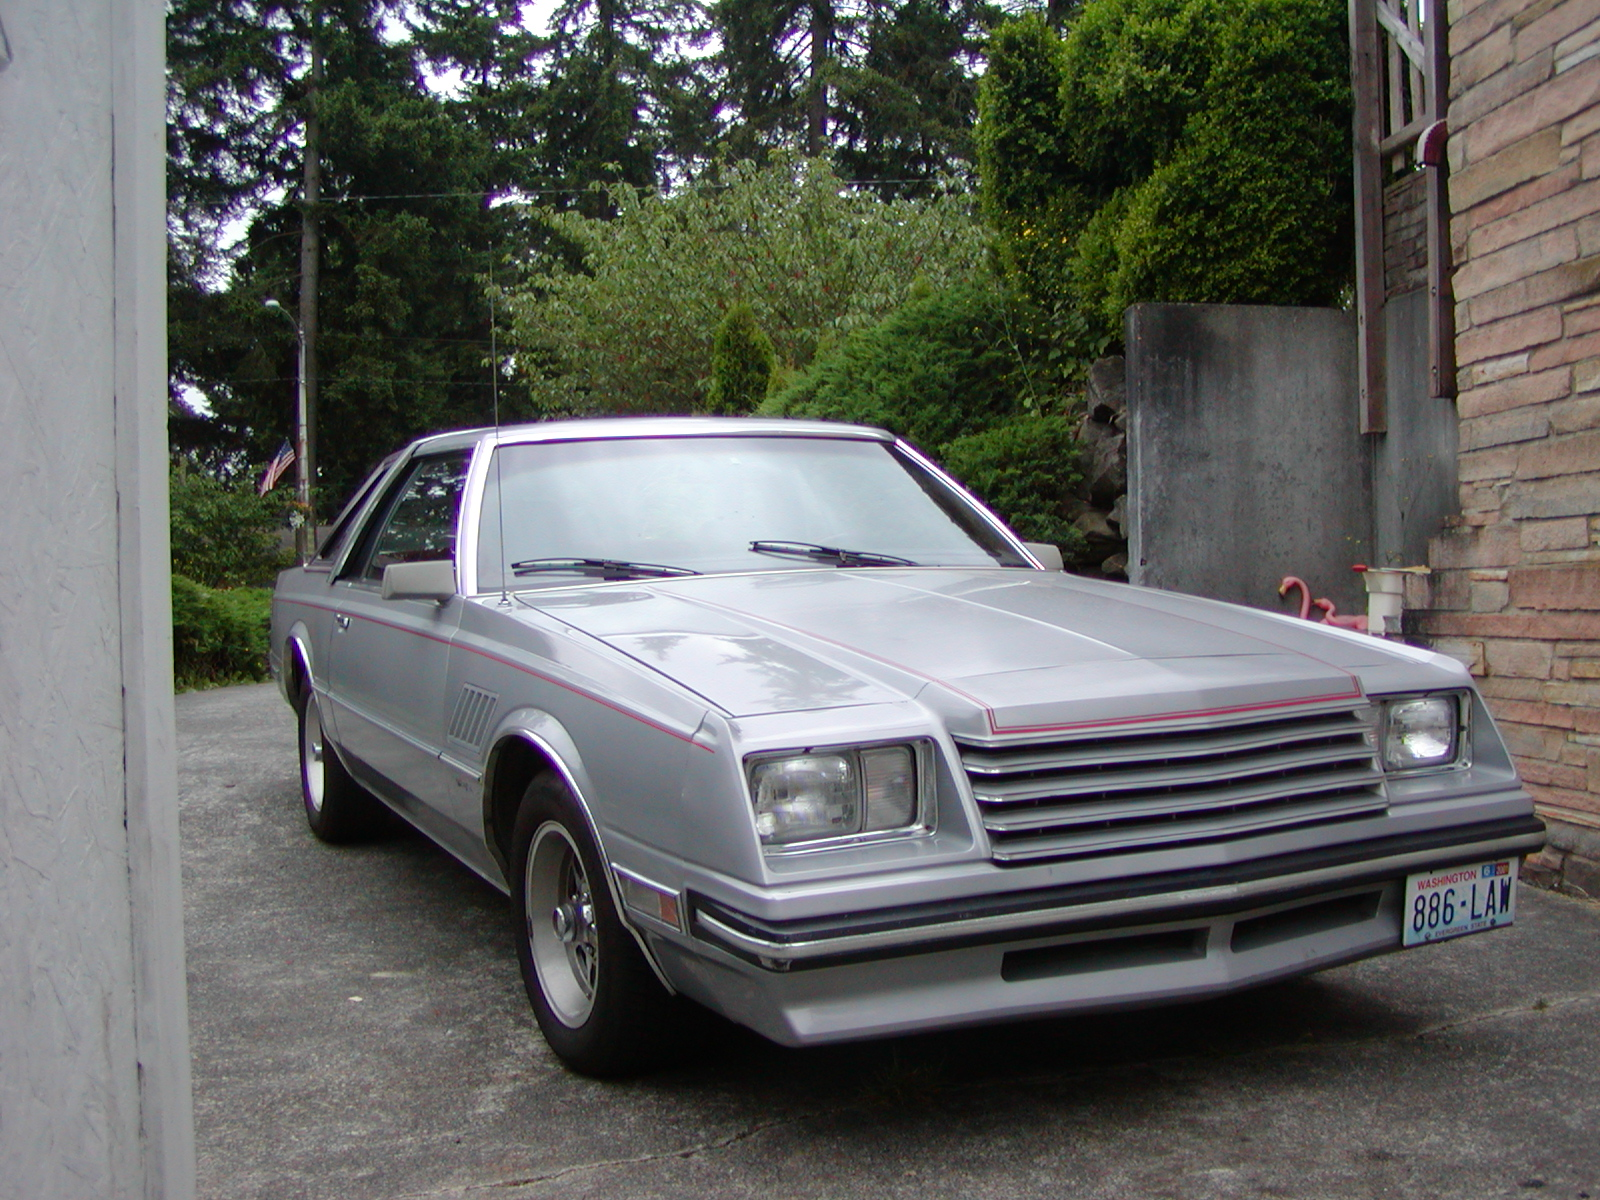 1980 Picture of luxury sedan Dodge Mirada, Stylish limousine